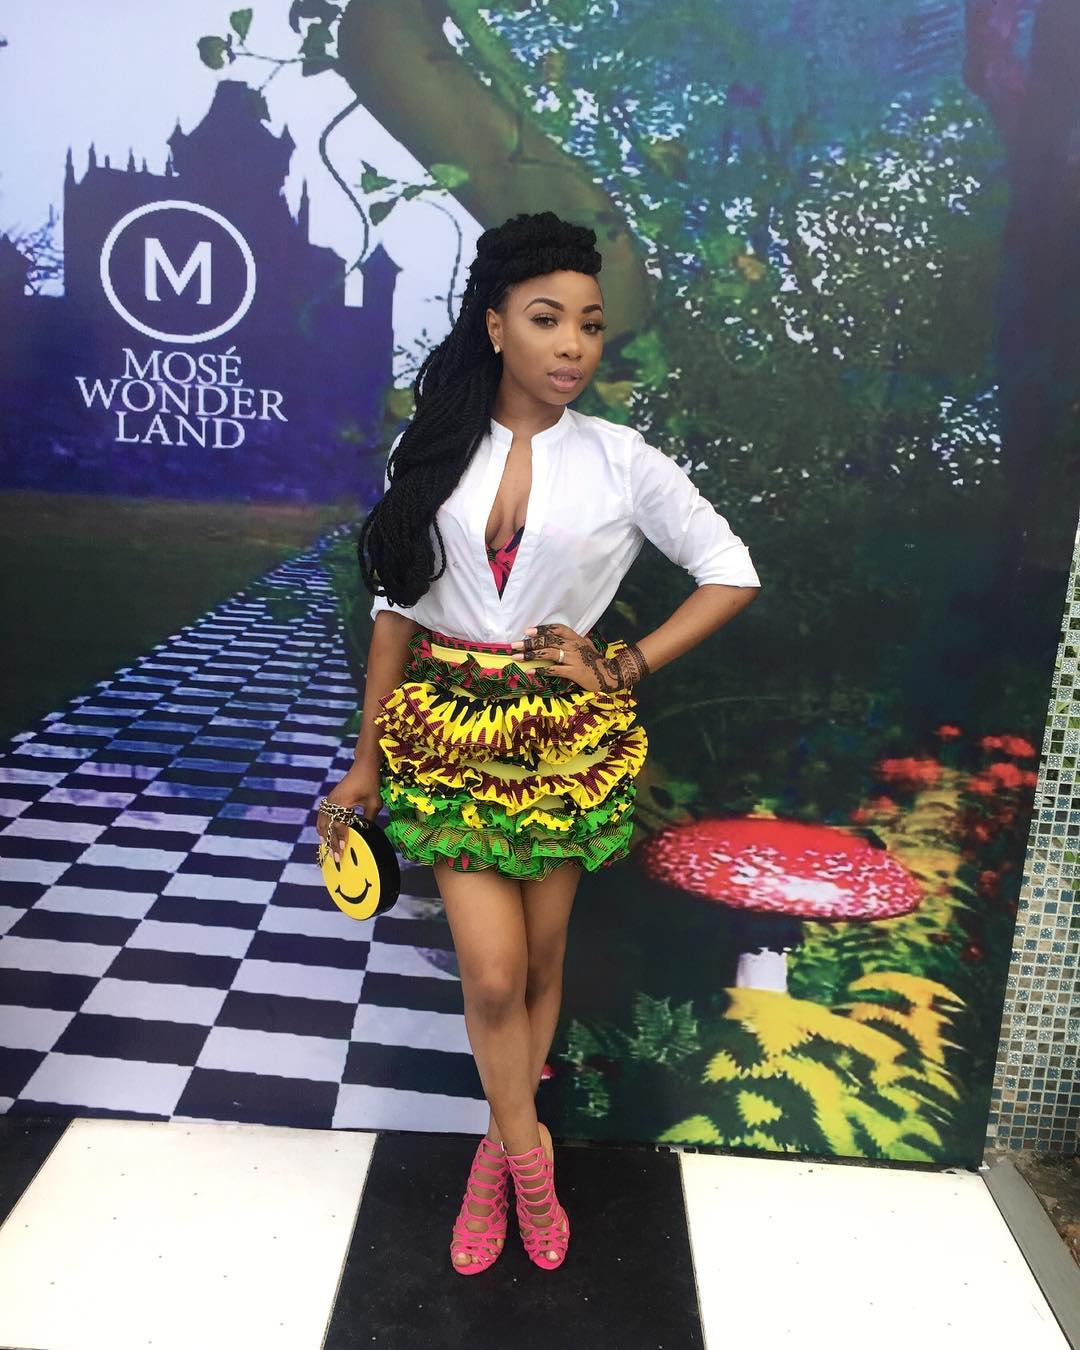 mo cheddah1 - Mo Cheddah Shows Us The Right Way To Wear Print